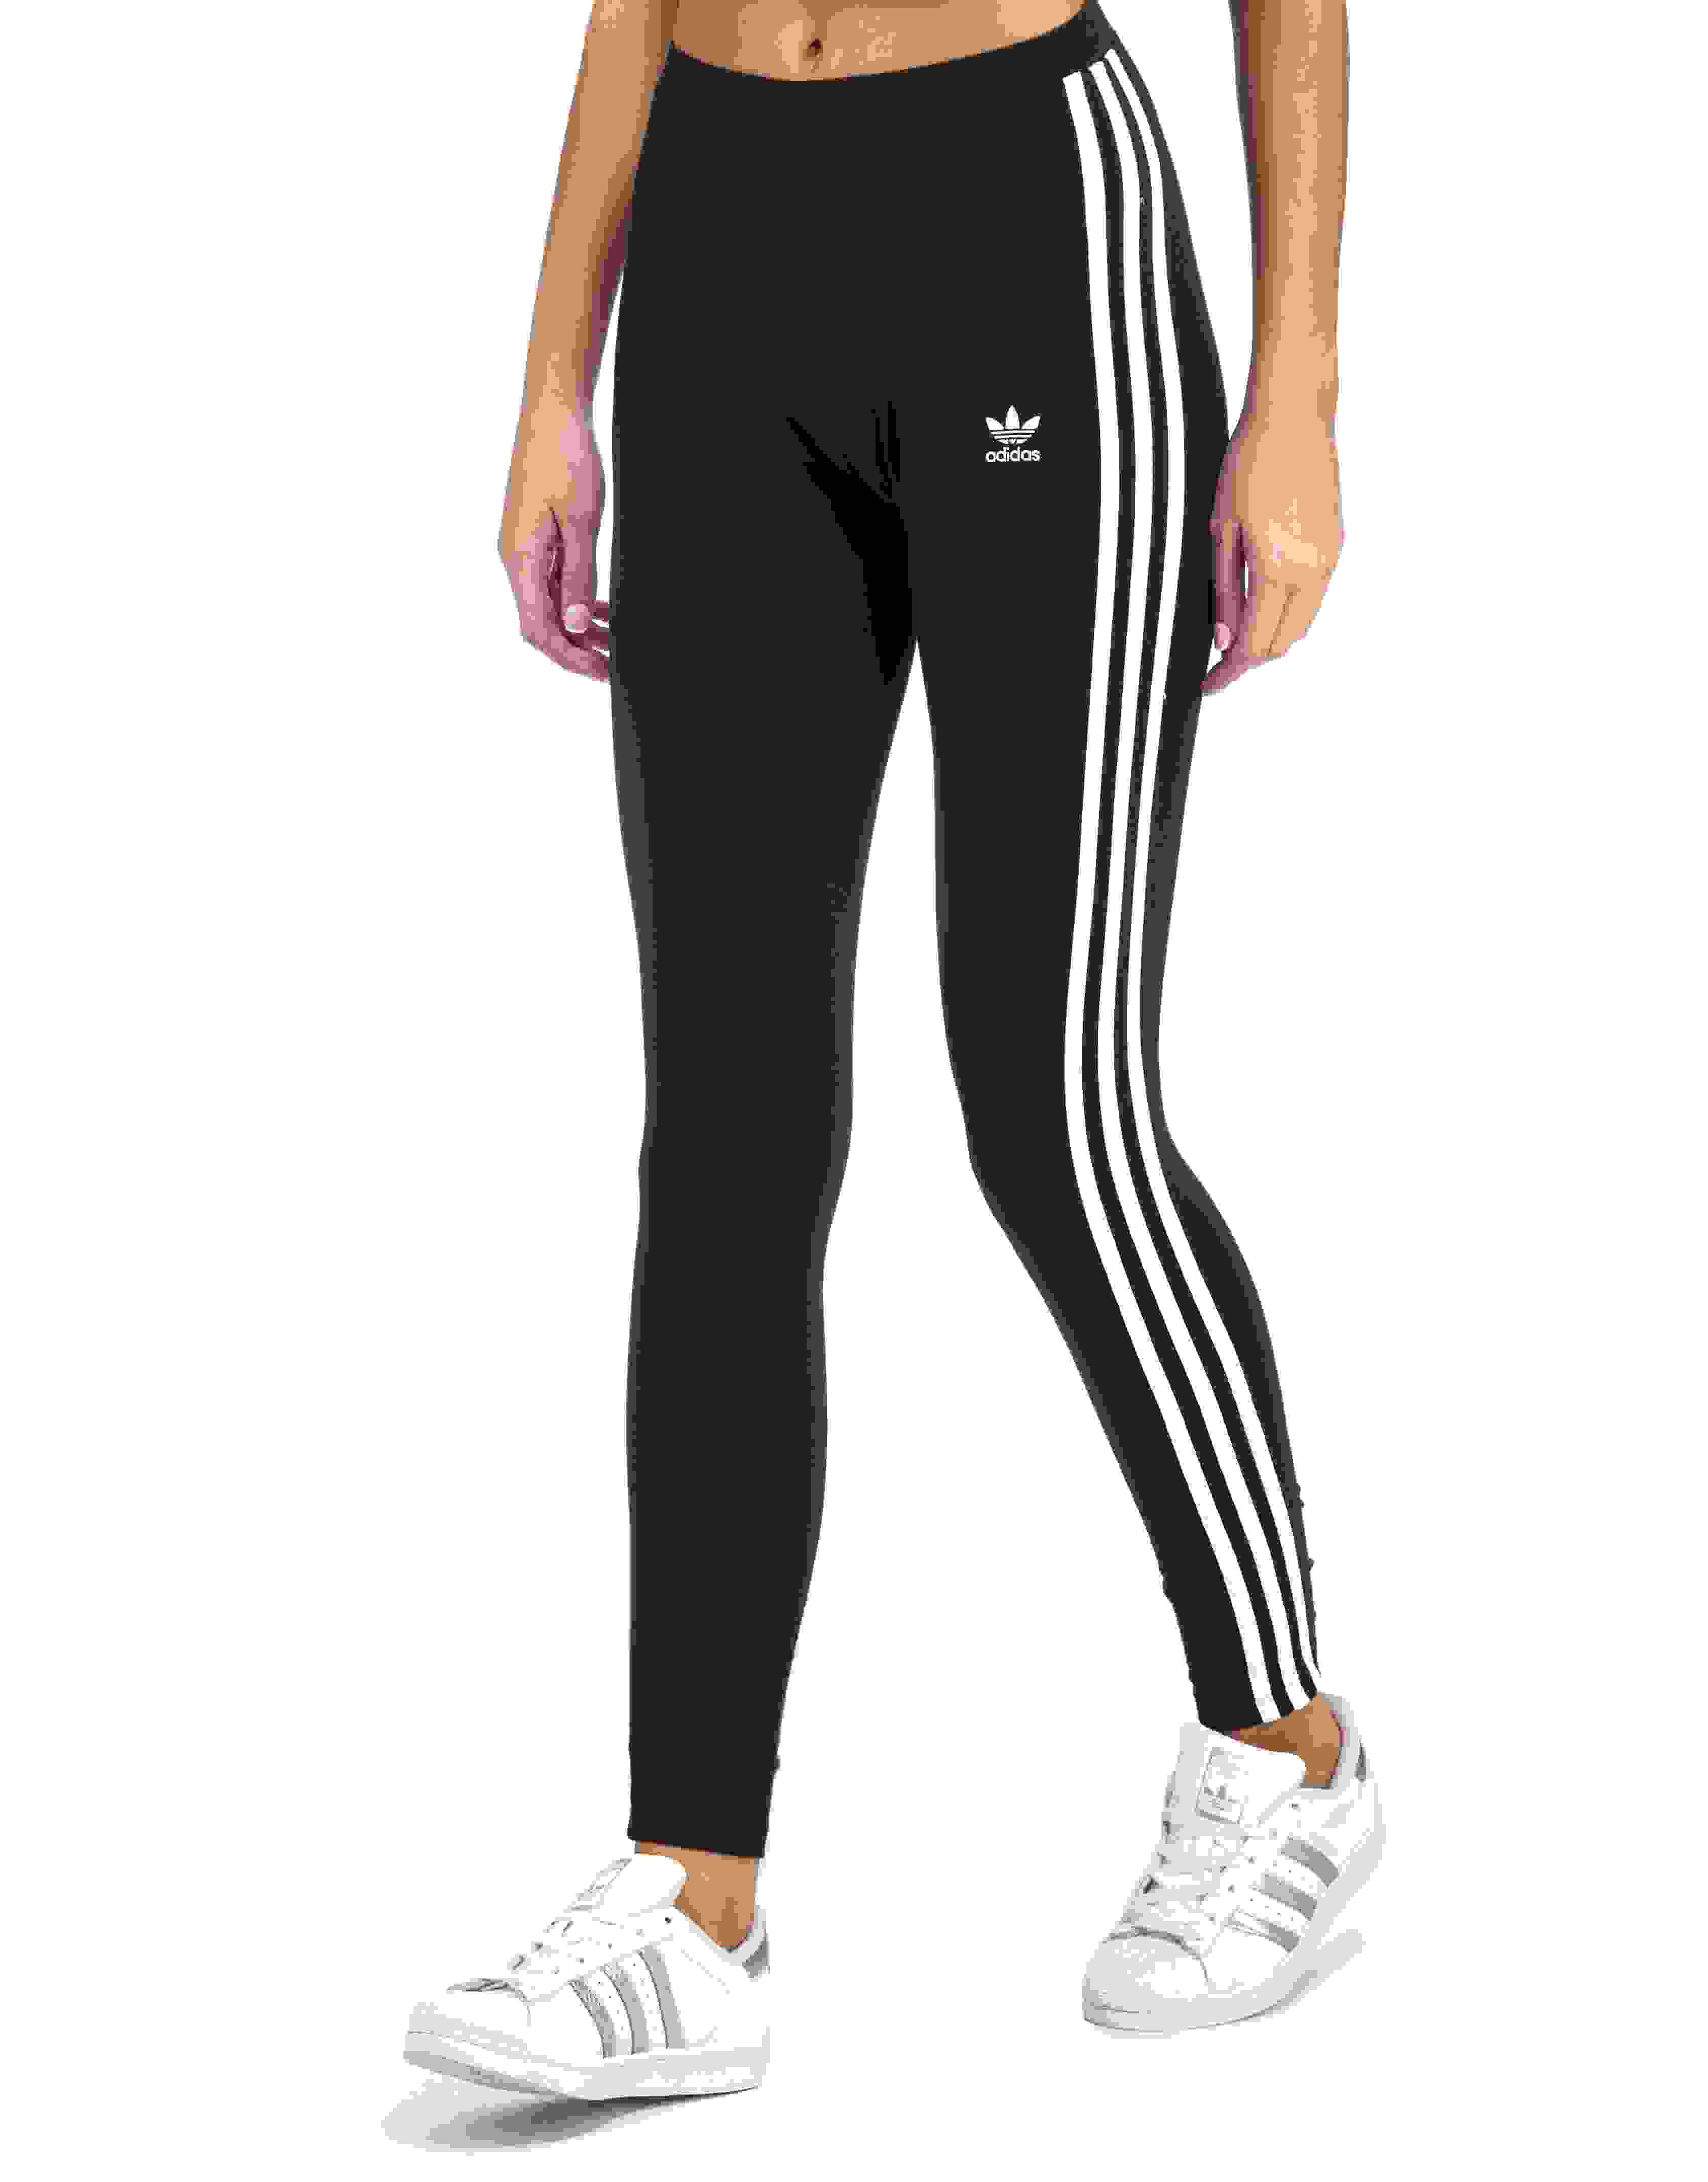 adidas 3 stripe leggings. adidas originals 3-stripes leggings 3 stripe s